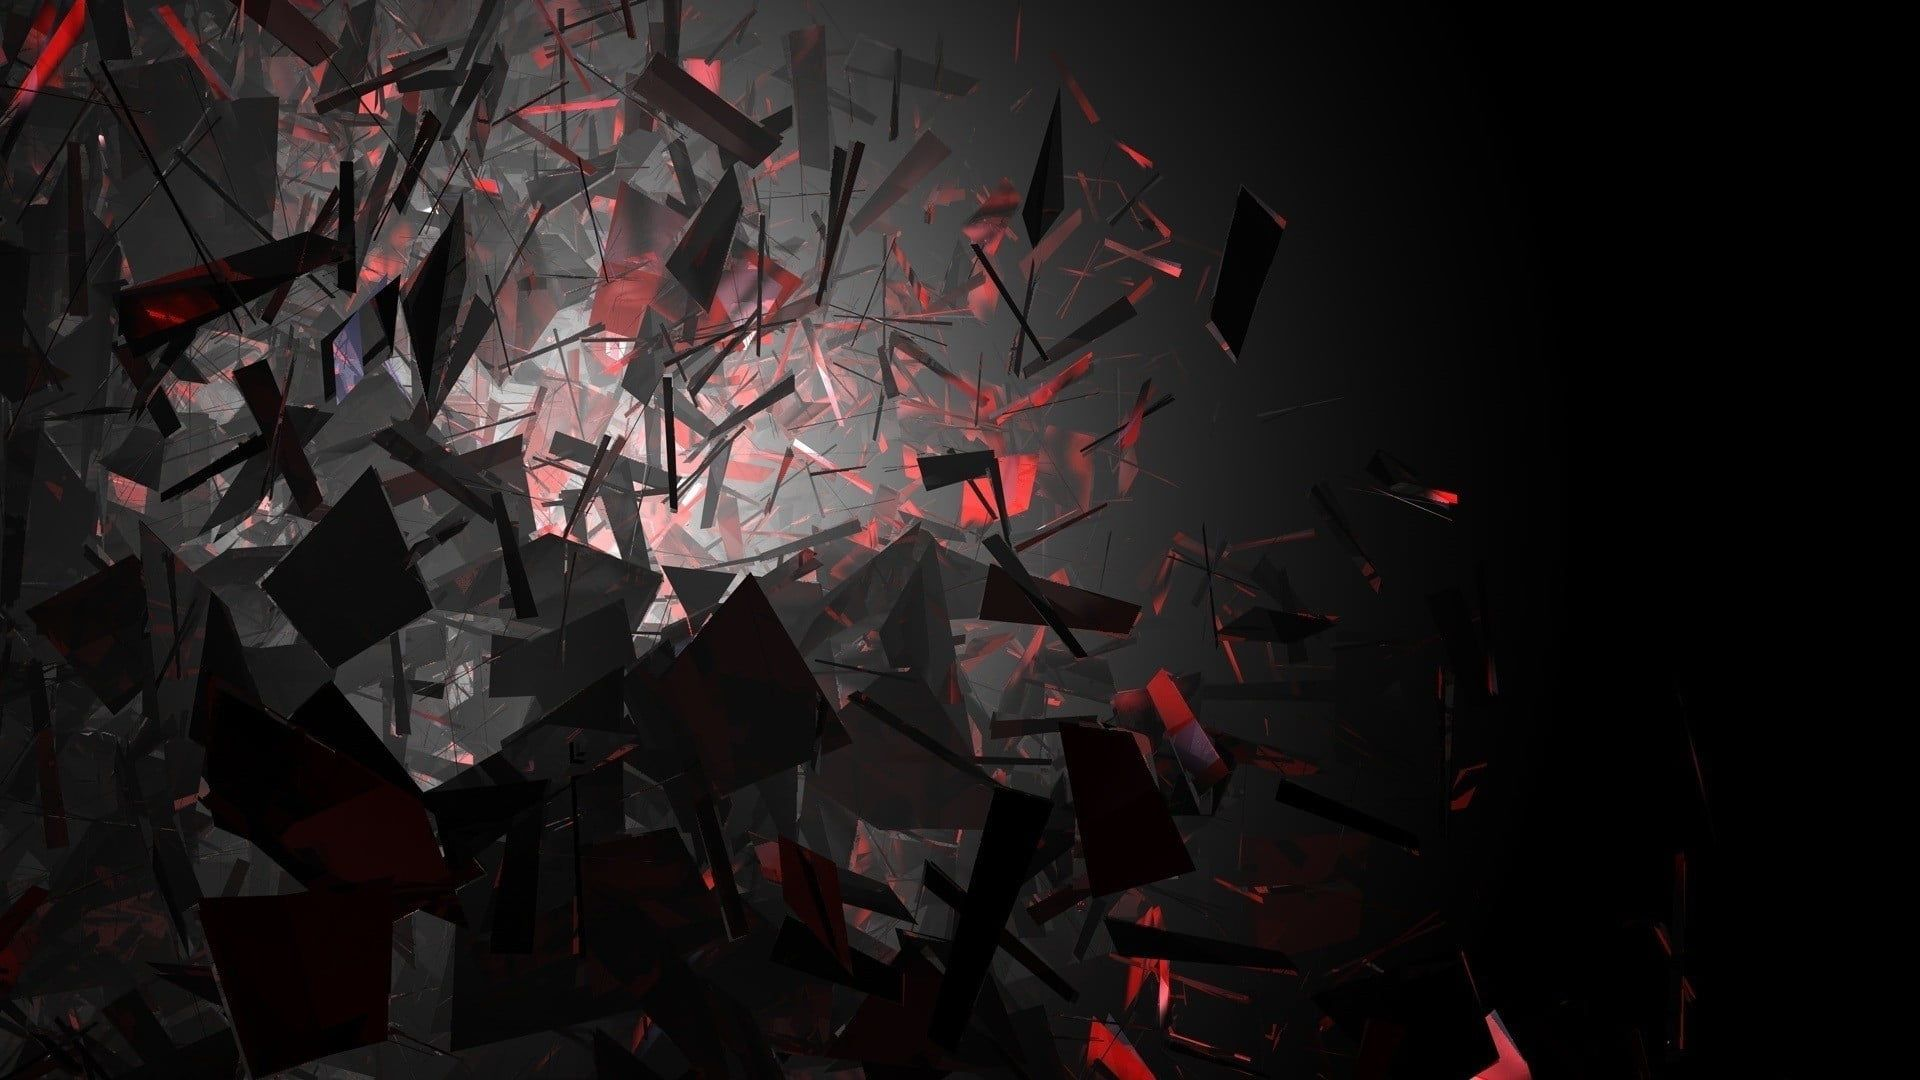 Black And Red Graphic Wallpaper Abstract Digital Art 1080p Wallpaper Hdwallpaper Desktop In 2020 Abstract Wallpaper Graphic Wallpaper Abstract